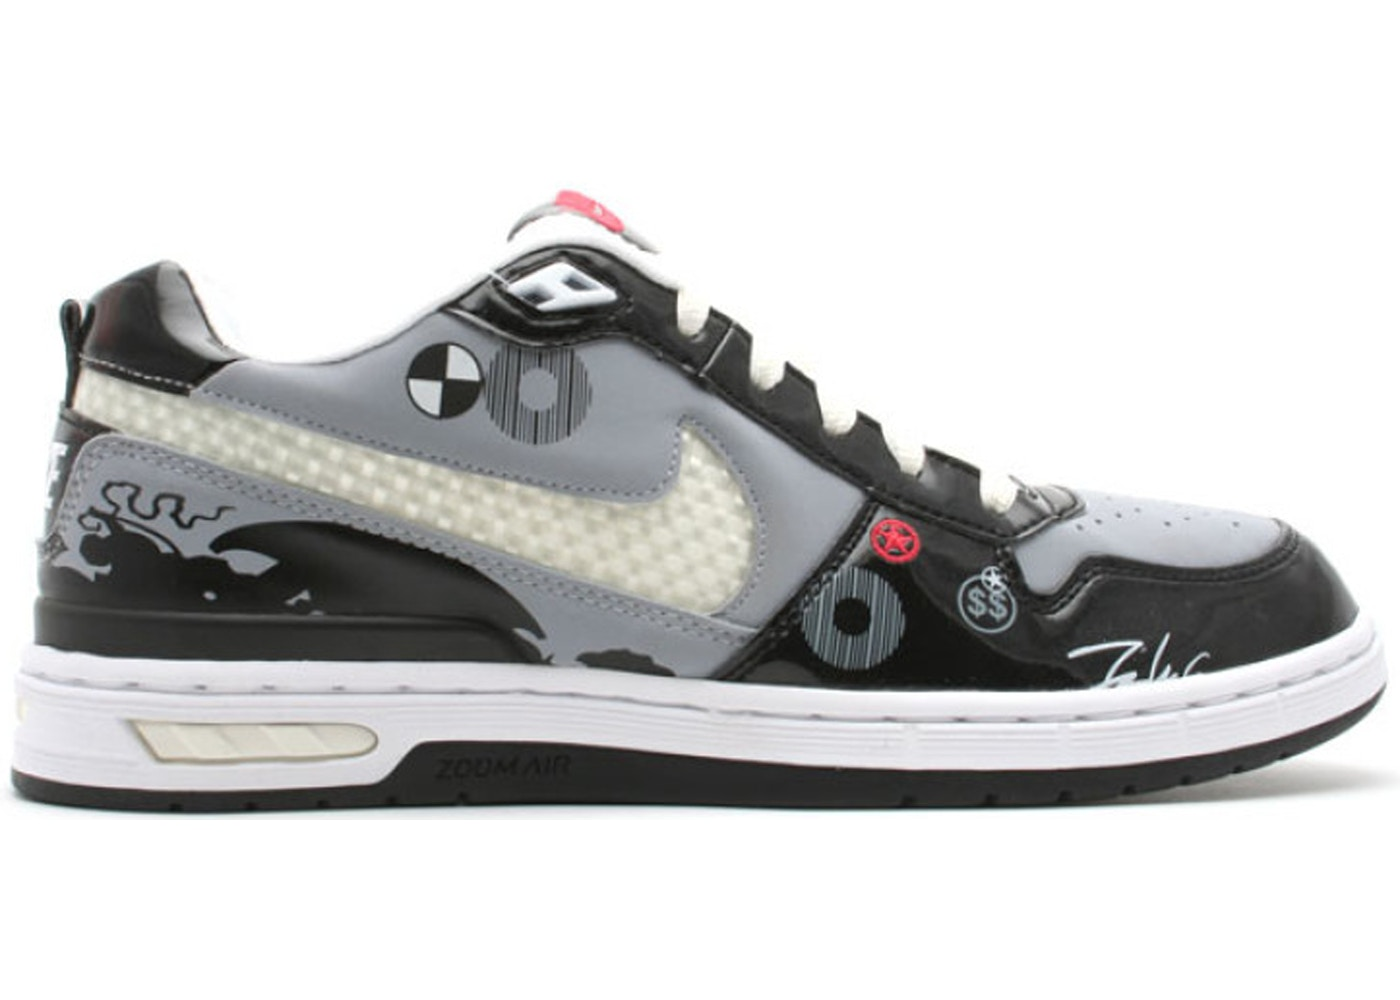 72c856cc Sell. or Ask. Size: 8.5. View All Bids. Nike P Rod 1 Elite Futura